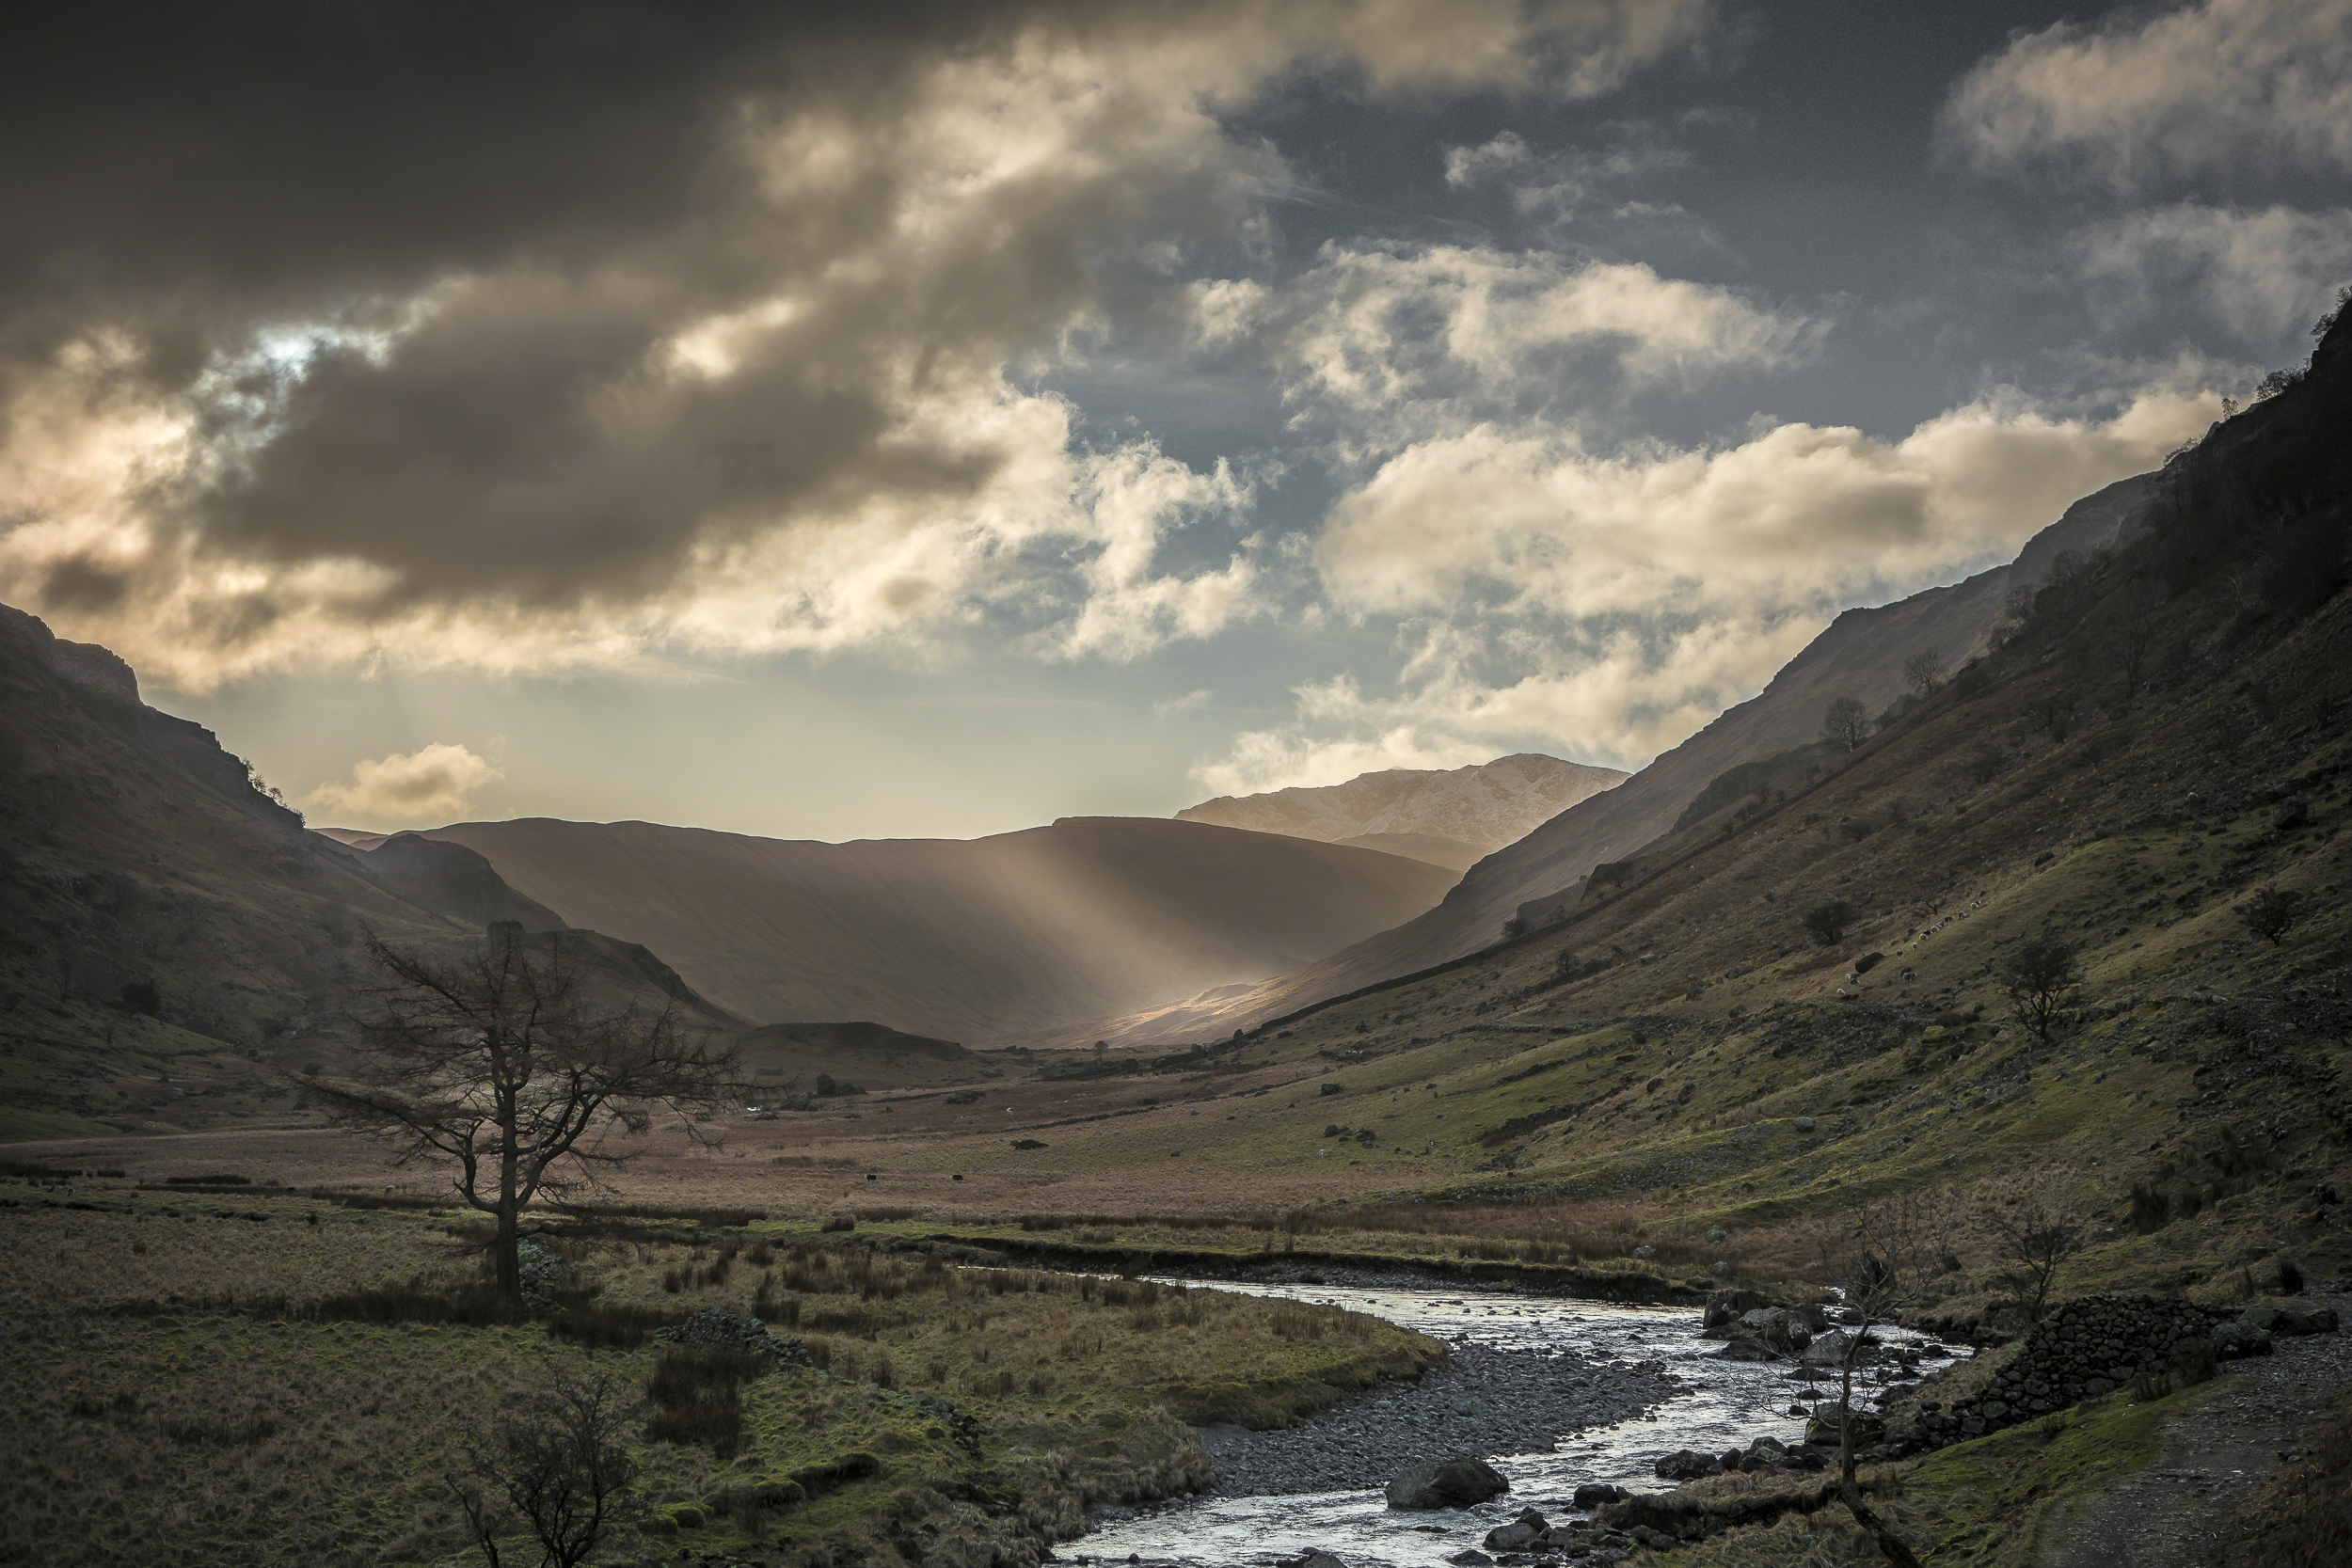 Langstrath Beck running through Langstrath Valley-1.jpg